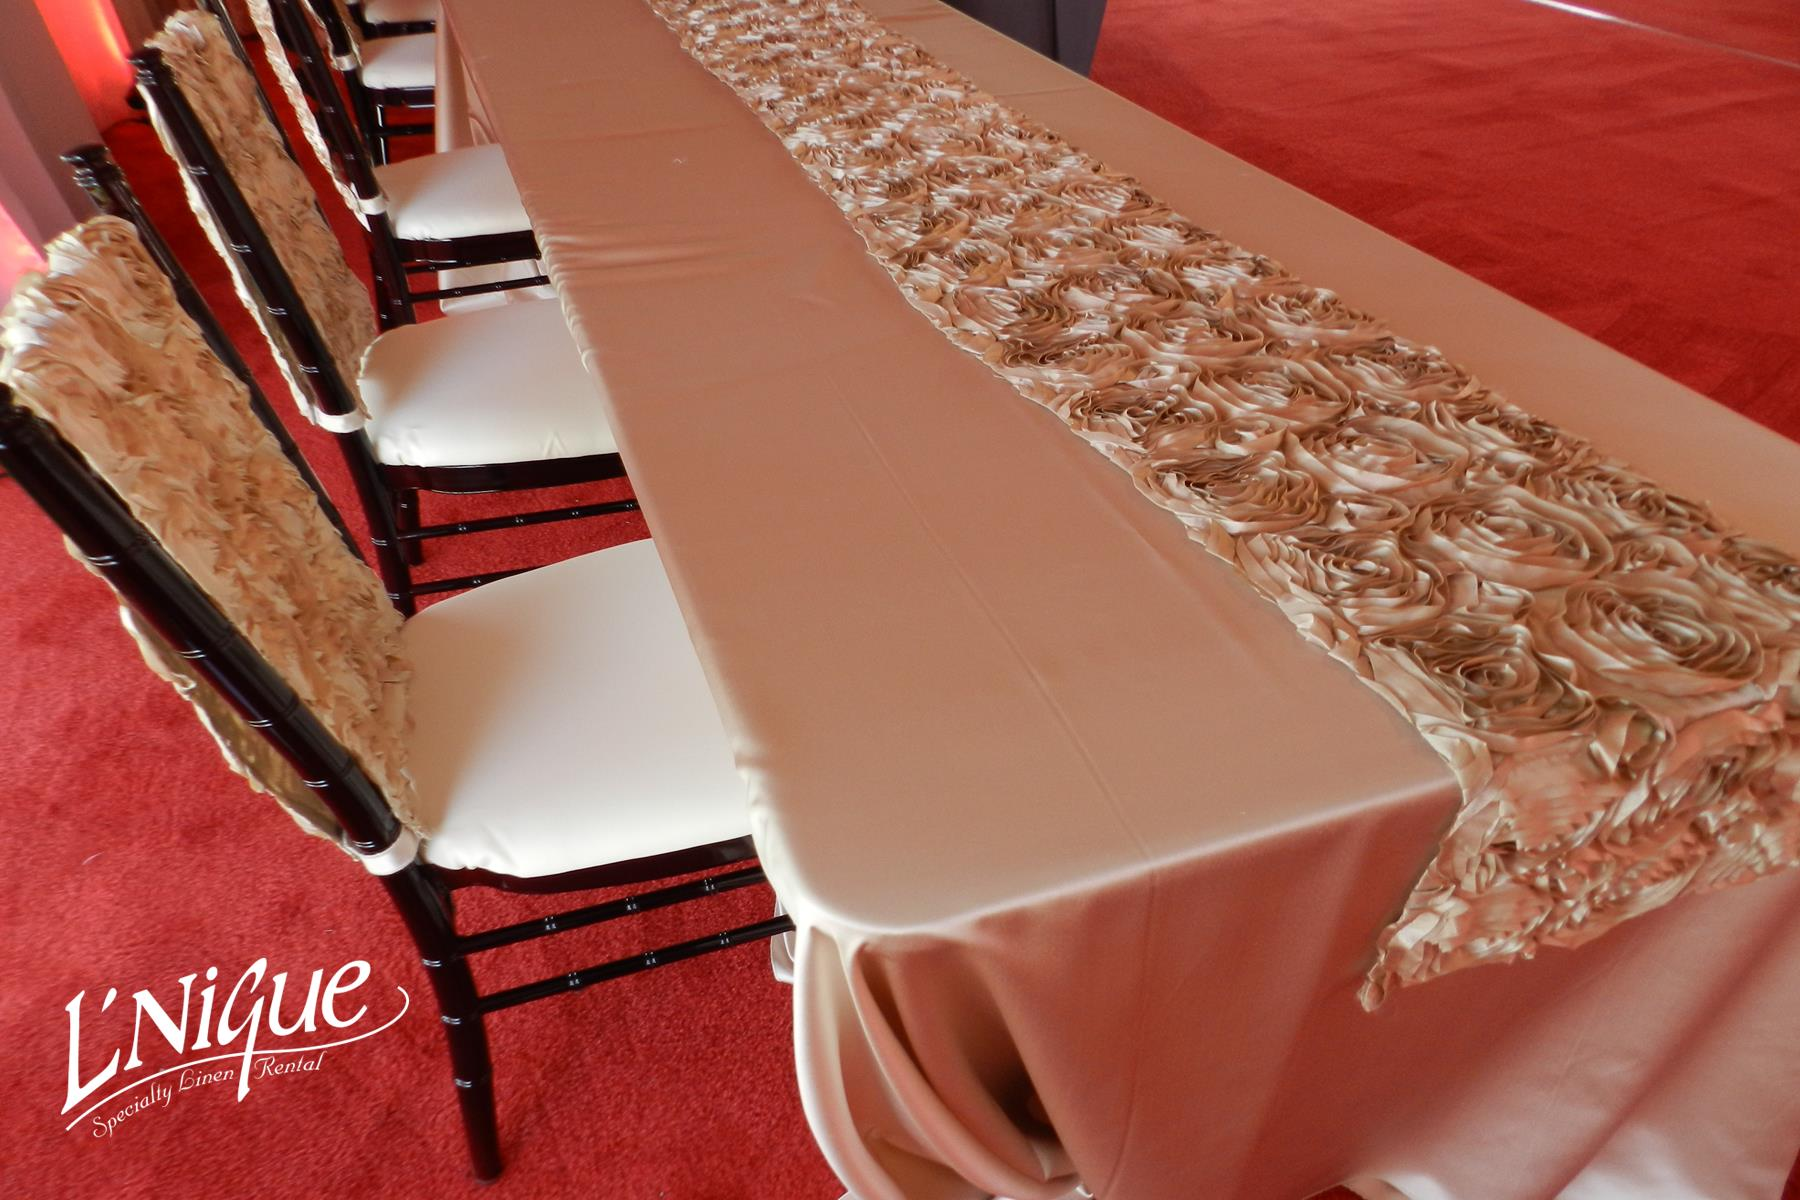 rent tablecloths and chair covers marshmallow chairs toddlers satin champagne tablecloth specialty linen rental